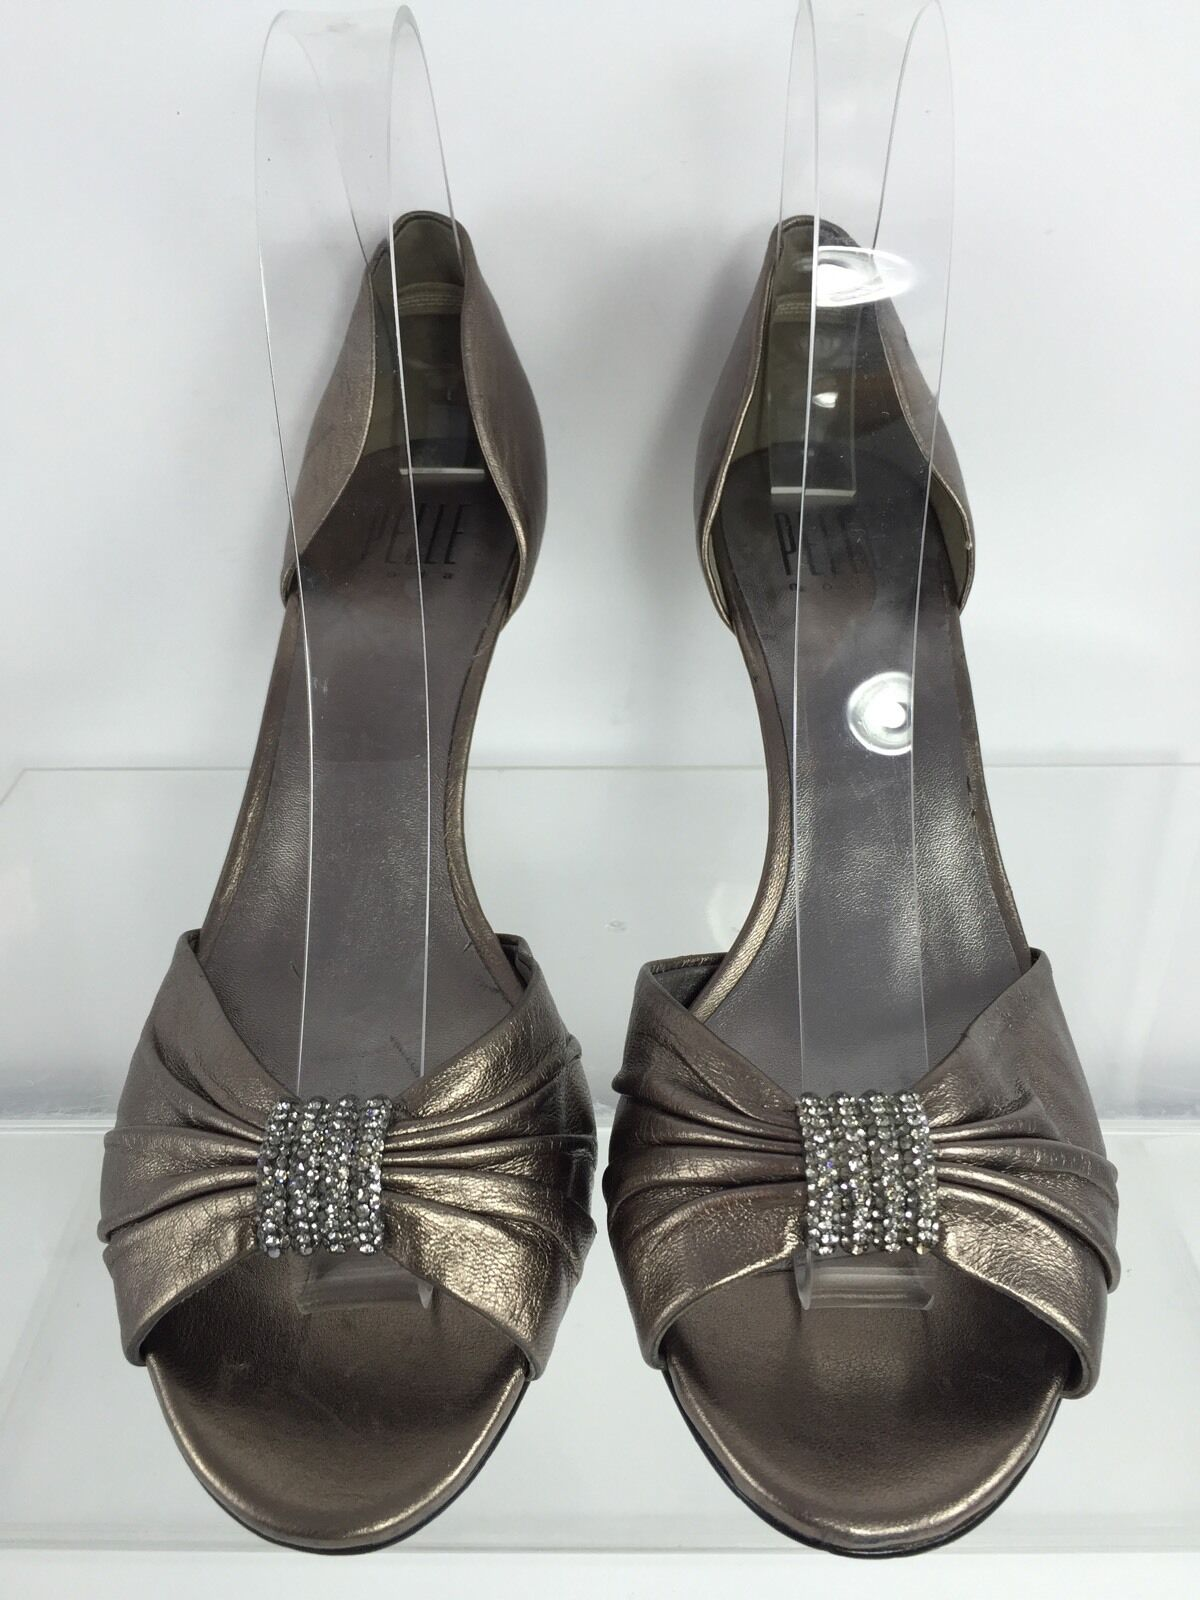 Pelle Moda Womens Metallic Bronze Leather Leather Leather Heels 8 M 8ed49a